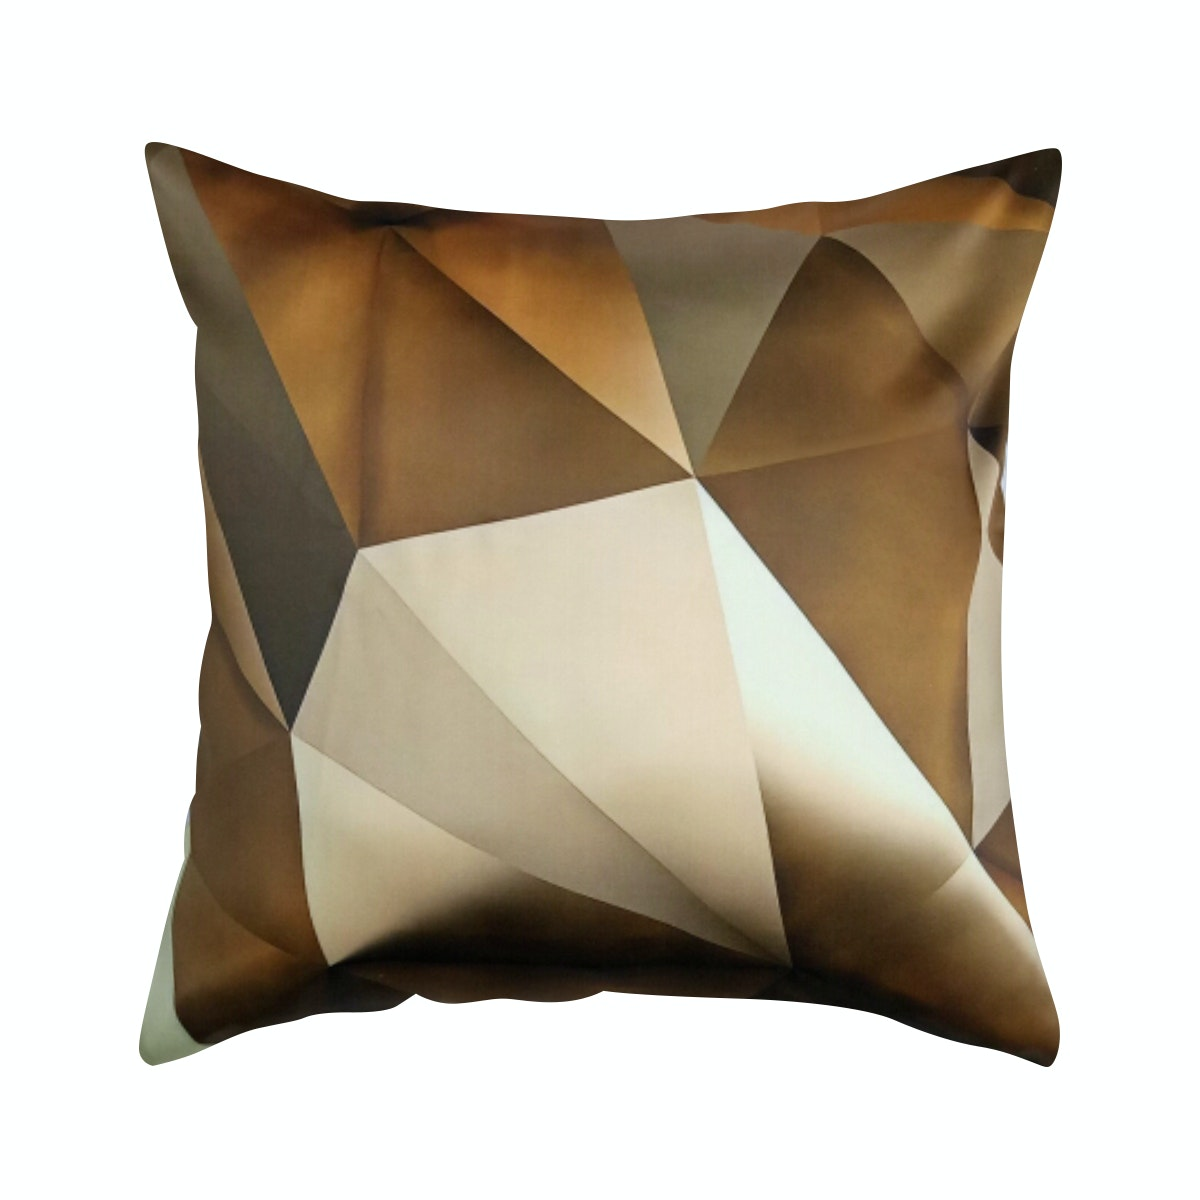 Megallery Cover Cushion NEWP13 40x40cm